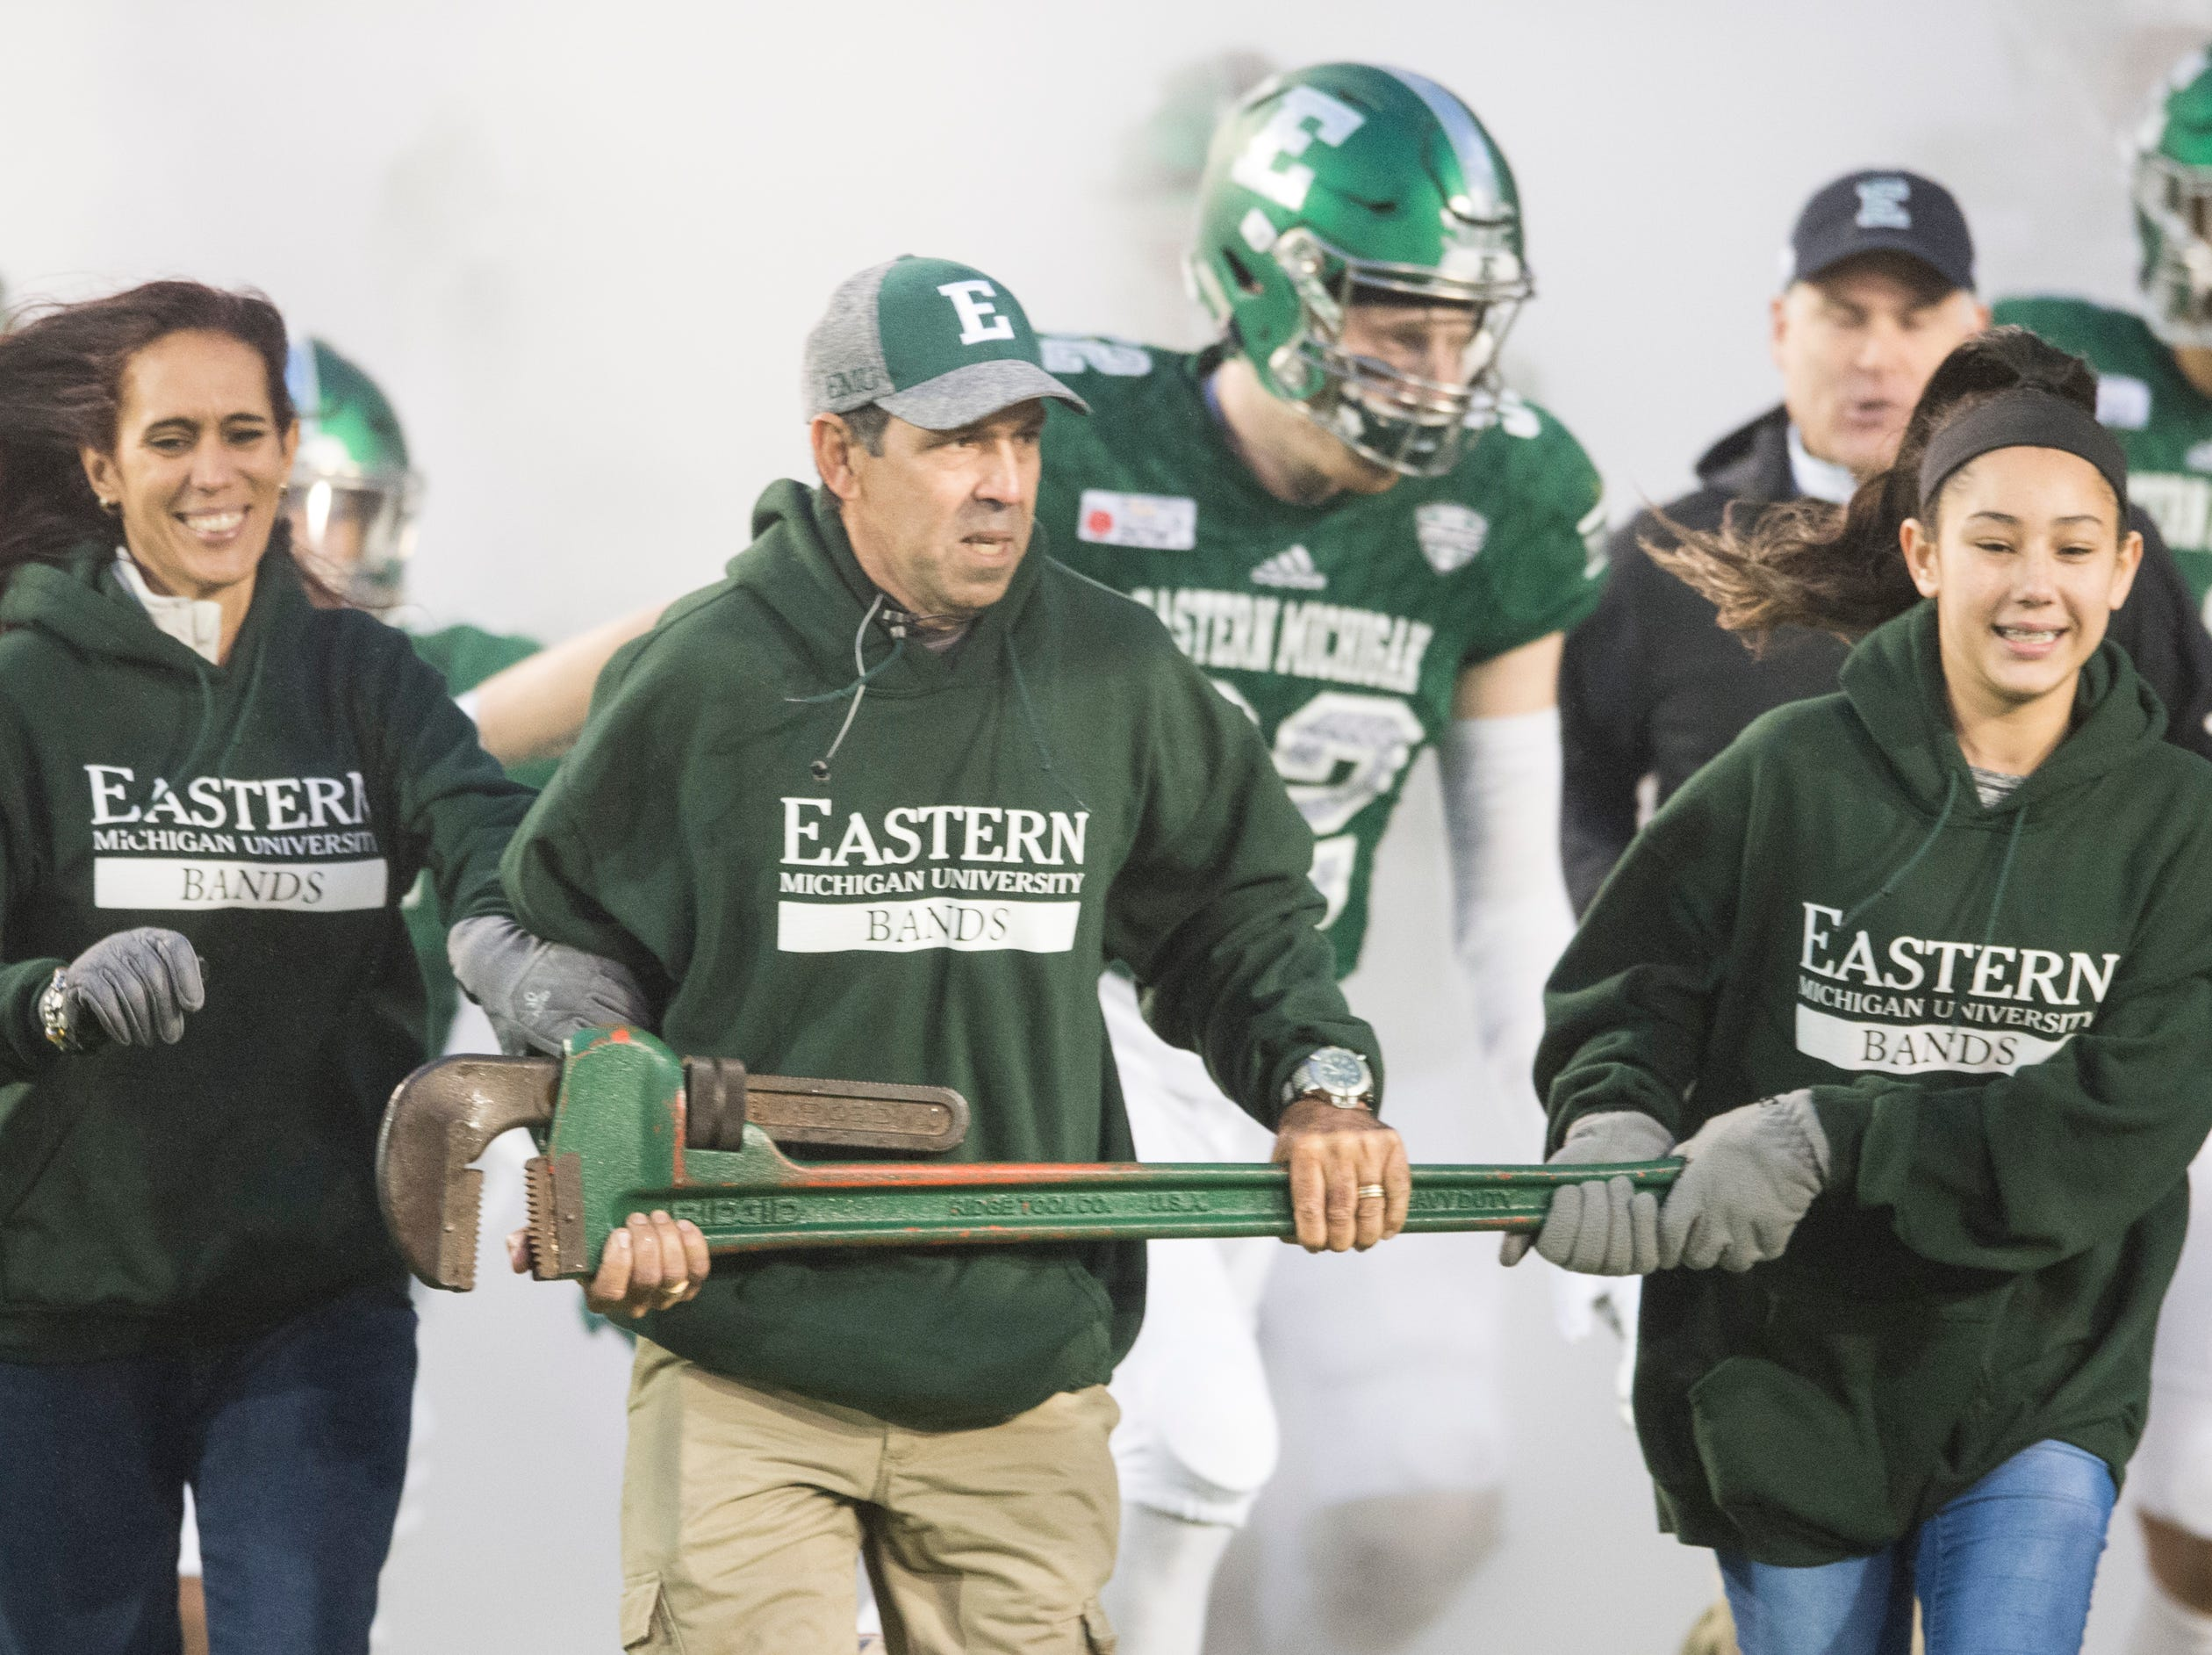 The family of Lazaro Amador, an Eastern Michigan marching band member that died Nov. 8, runs onto the field with the team during the Camellia Bowl at Cramton Bowl in Montgomery, Ala., on Saturday, Dec. 15, 2018. Georgia Southern leads Eastern Michigan 17-7 at halftime.